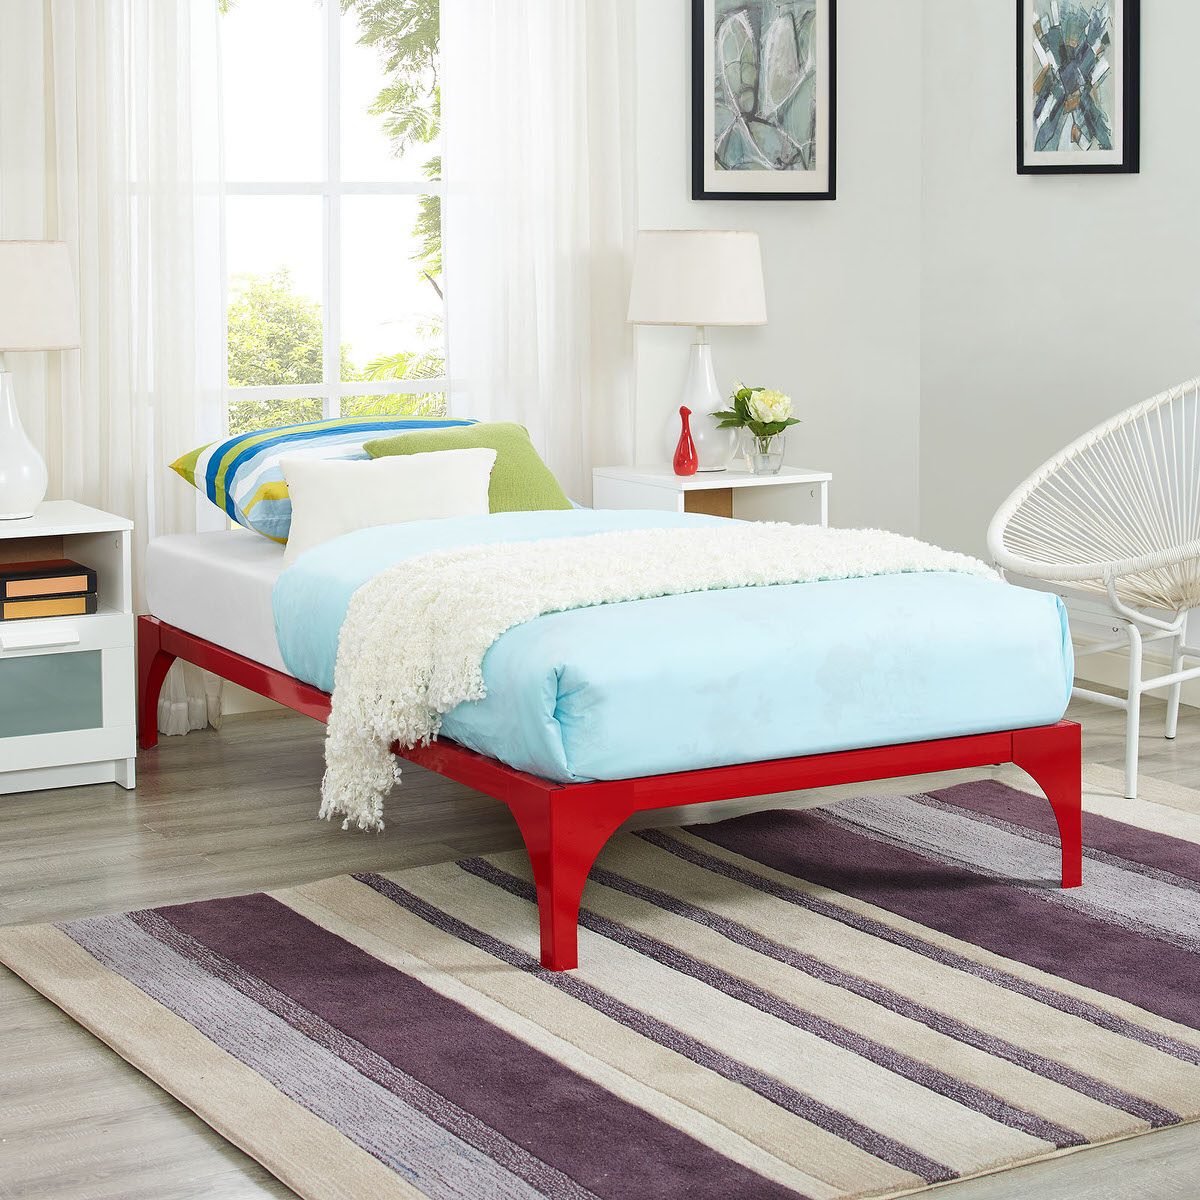 Ollie Twin Bed Frame Red by Modway